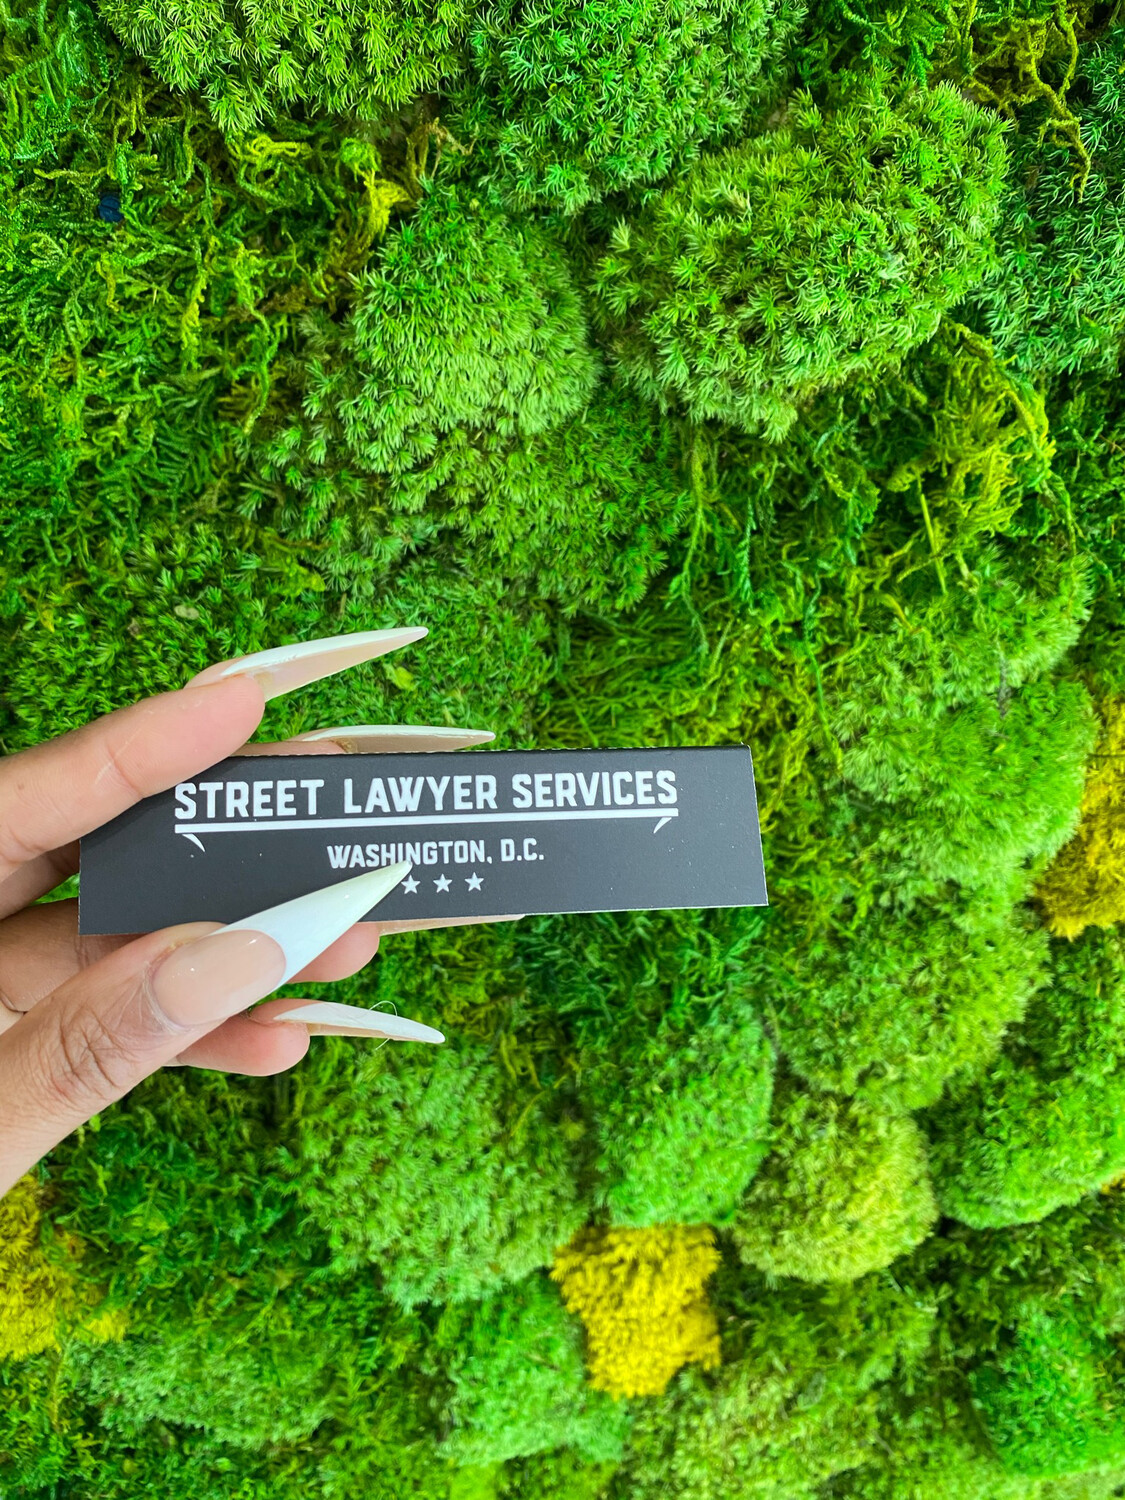 SLS Rolling Papers